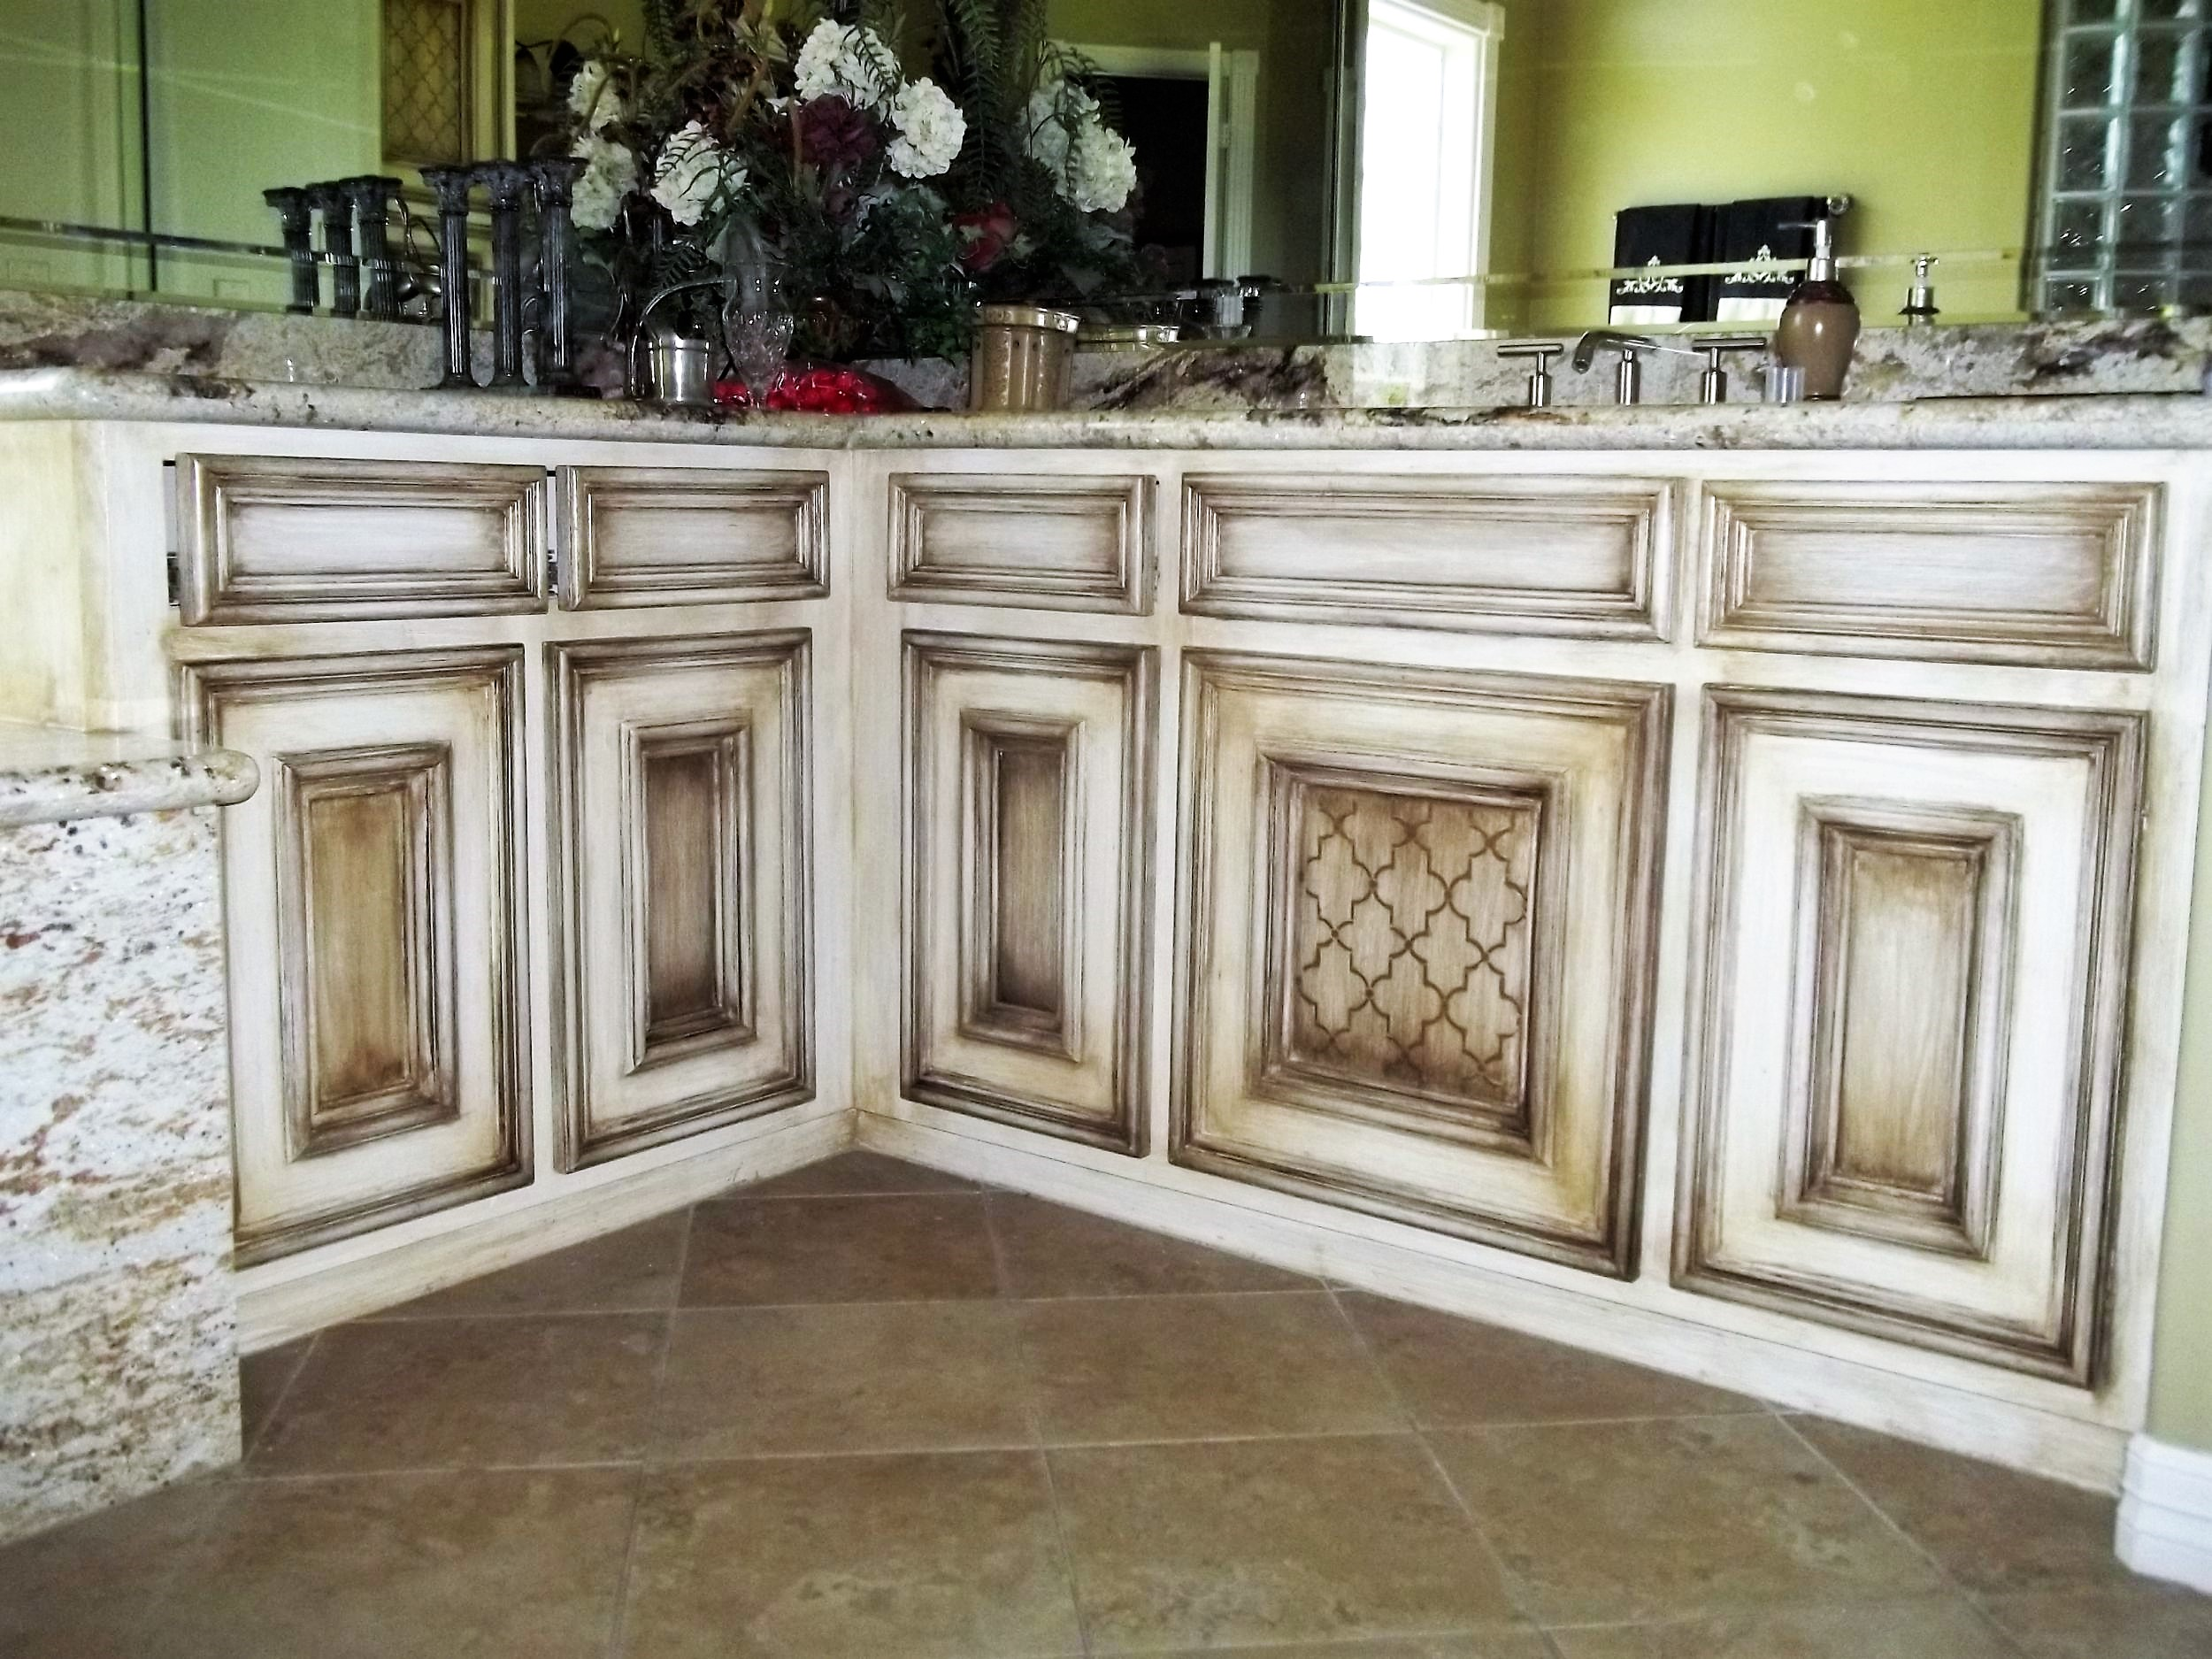 Hand Painted Kitchen Cabinets Brilliant Custom Hand Painted Kitchen Cabinets Houston 8322579285 Design Inspiration